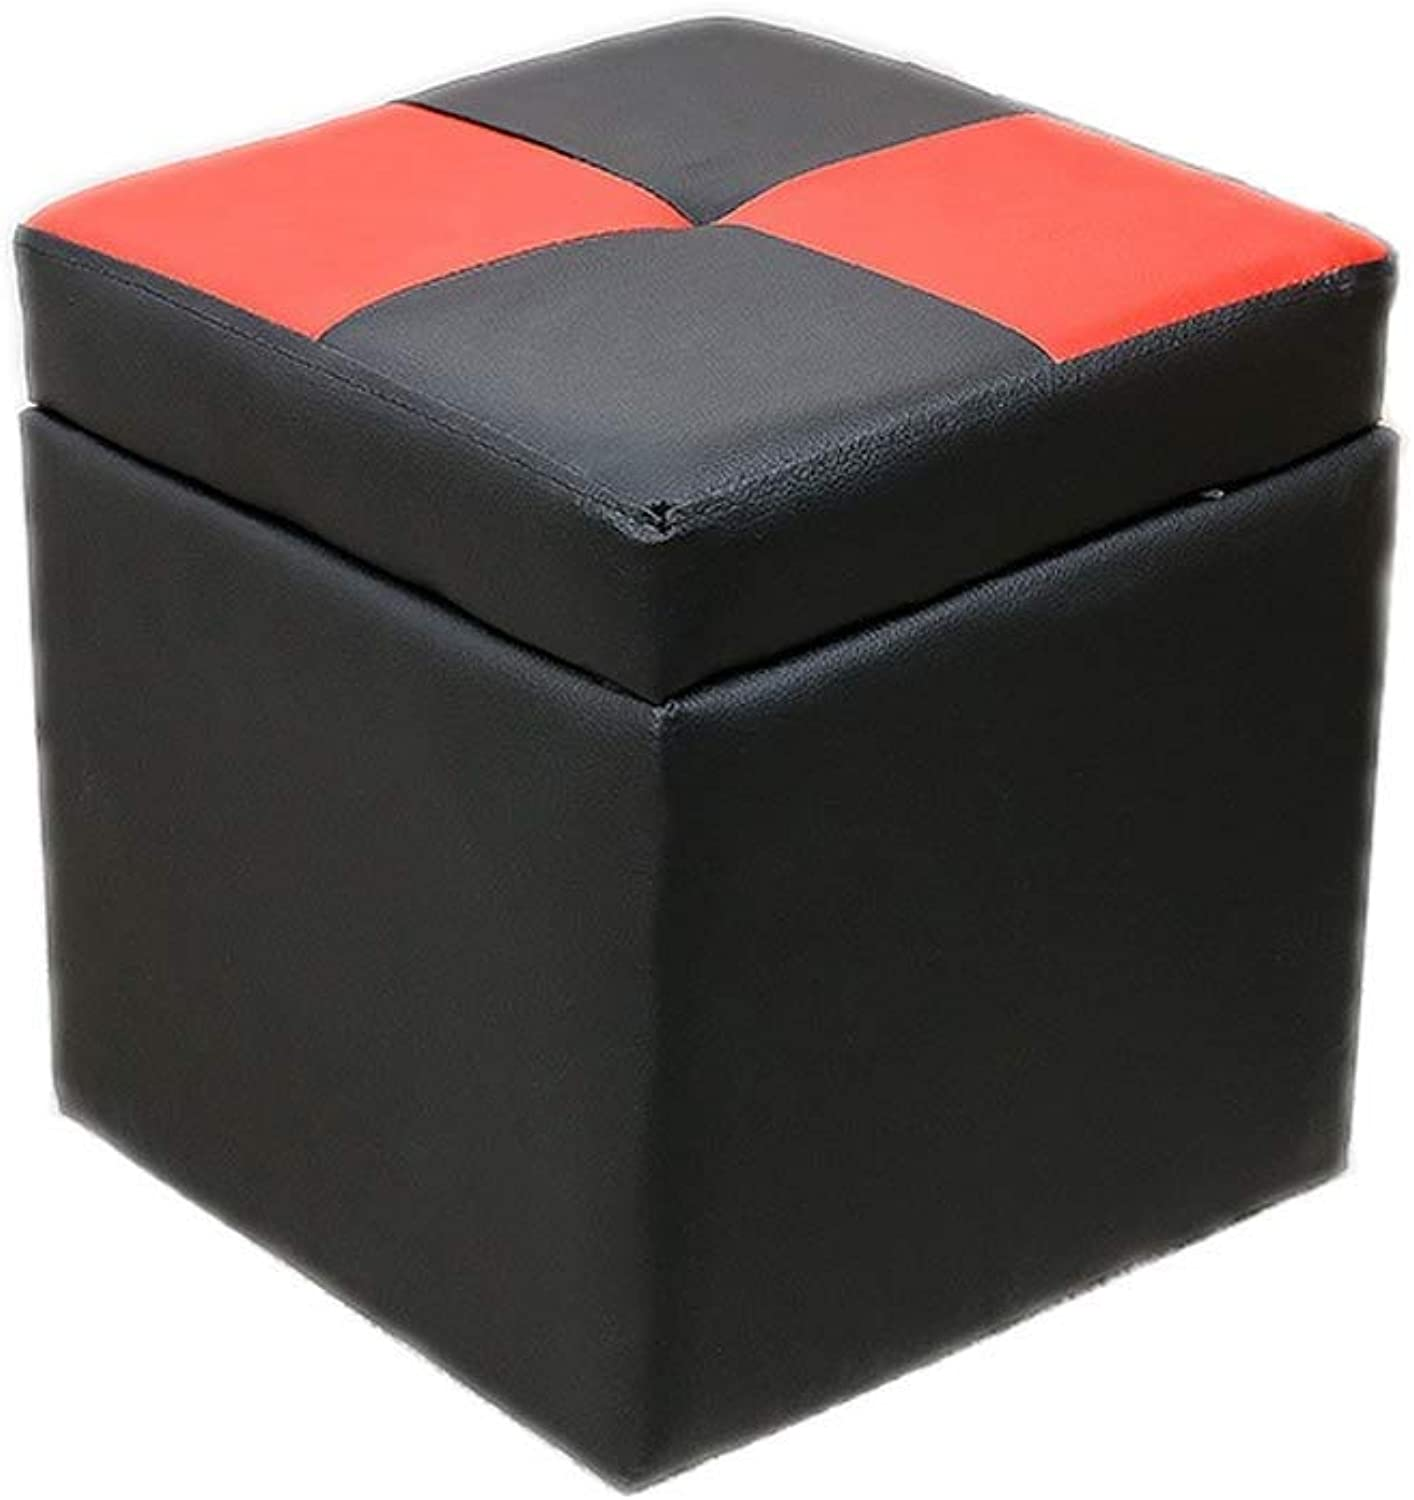 Storage Stool Footstool Pouffe Seat Trunk Stool Foldaway Chest Chair Practical Footrest Coffee Table Footstool Toy Storage Box LEBAO (color   Black Red)